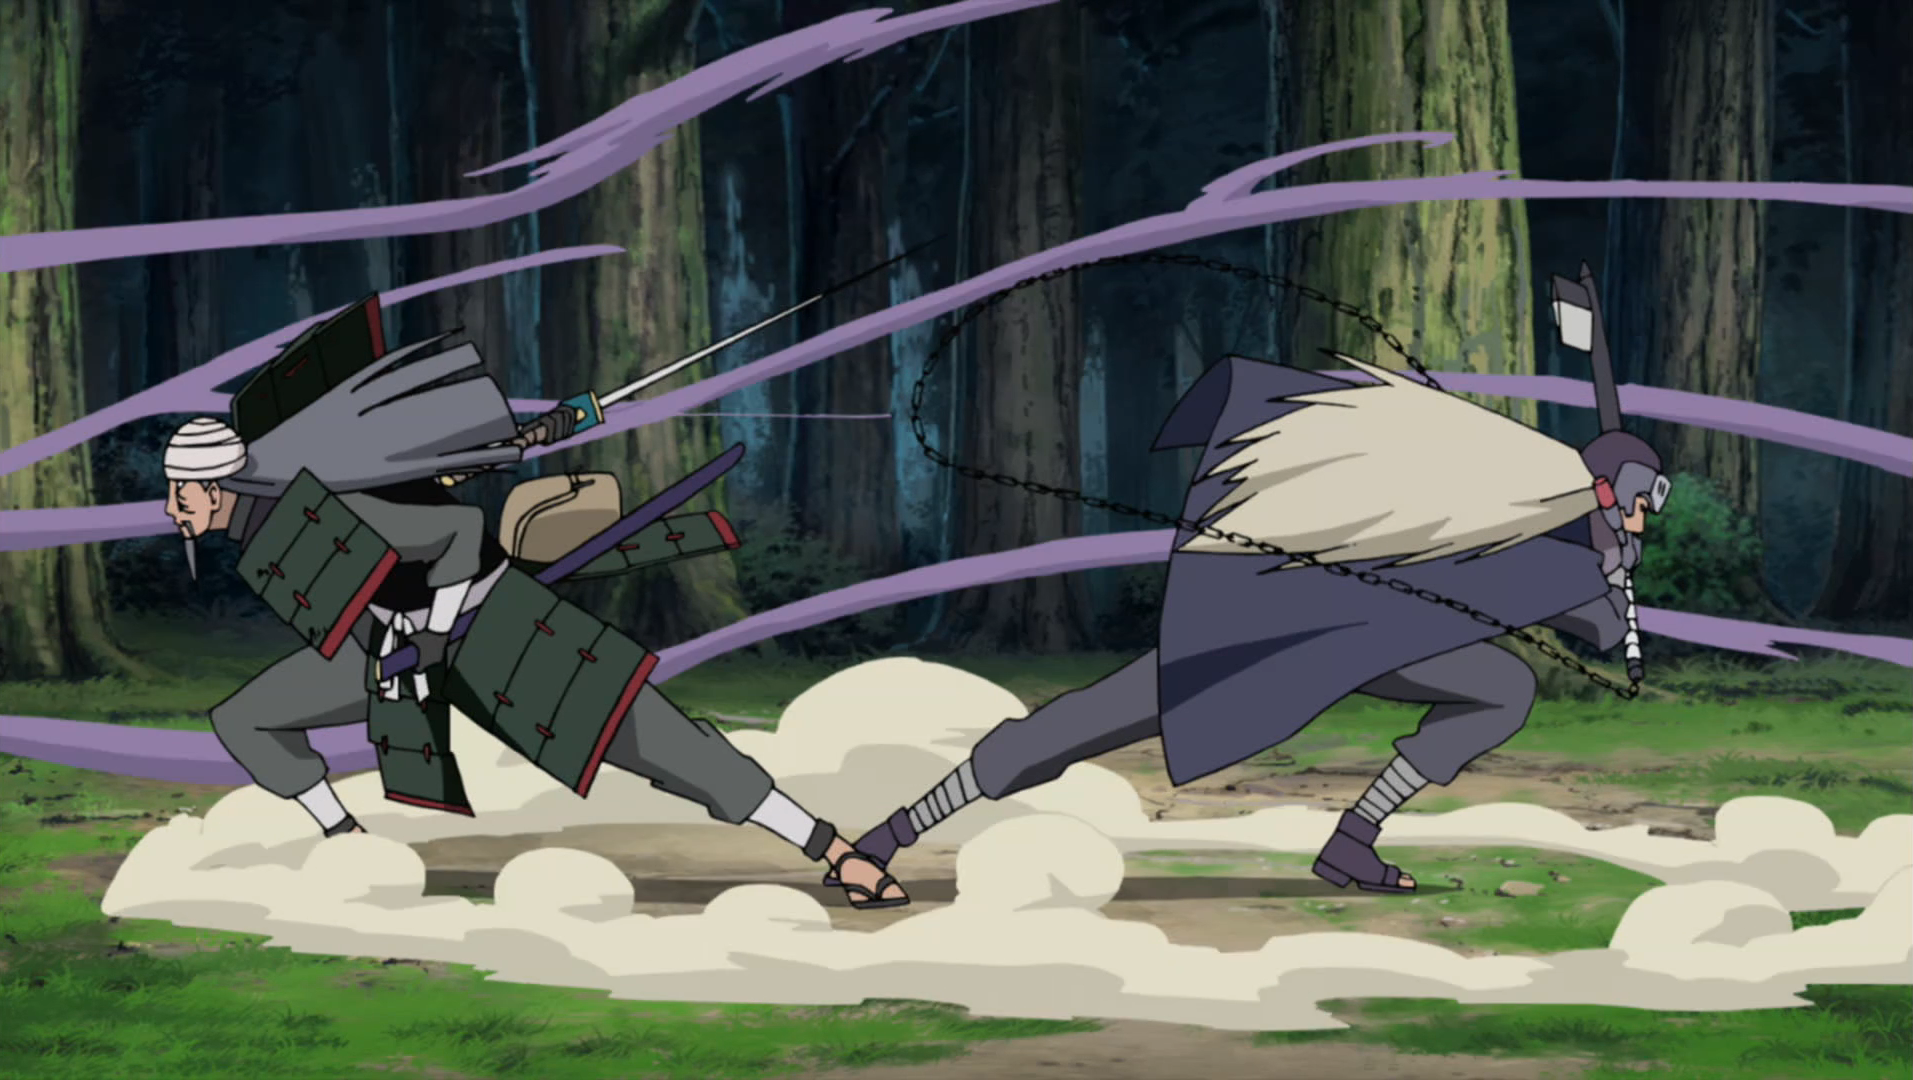 http://images3.wikia.nocookie.net/__cb20120802123106/naruto/images/4/4a/Mifune_defeats_Hanzo.png